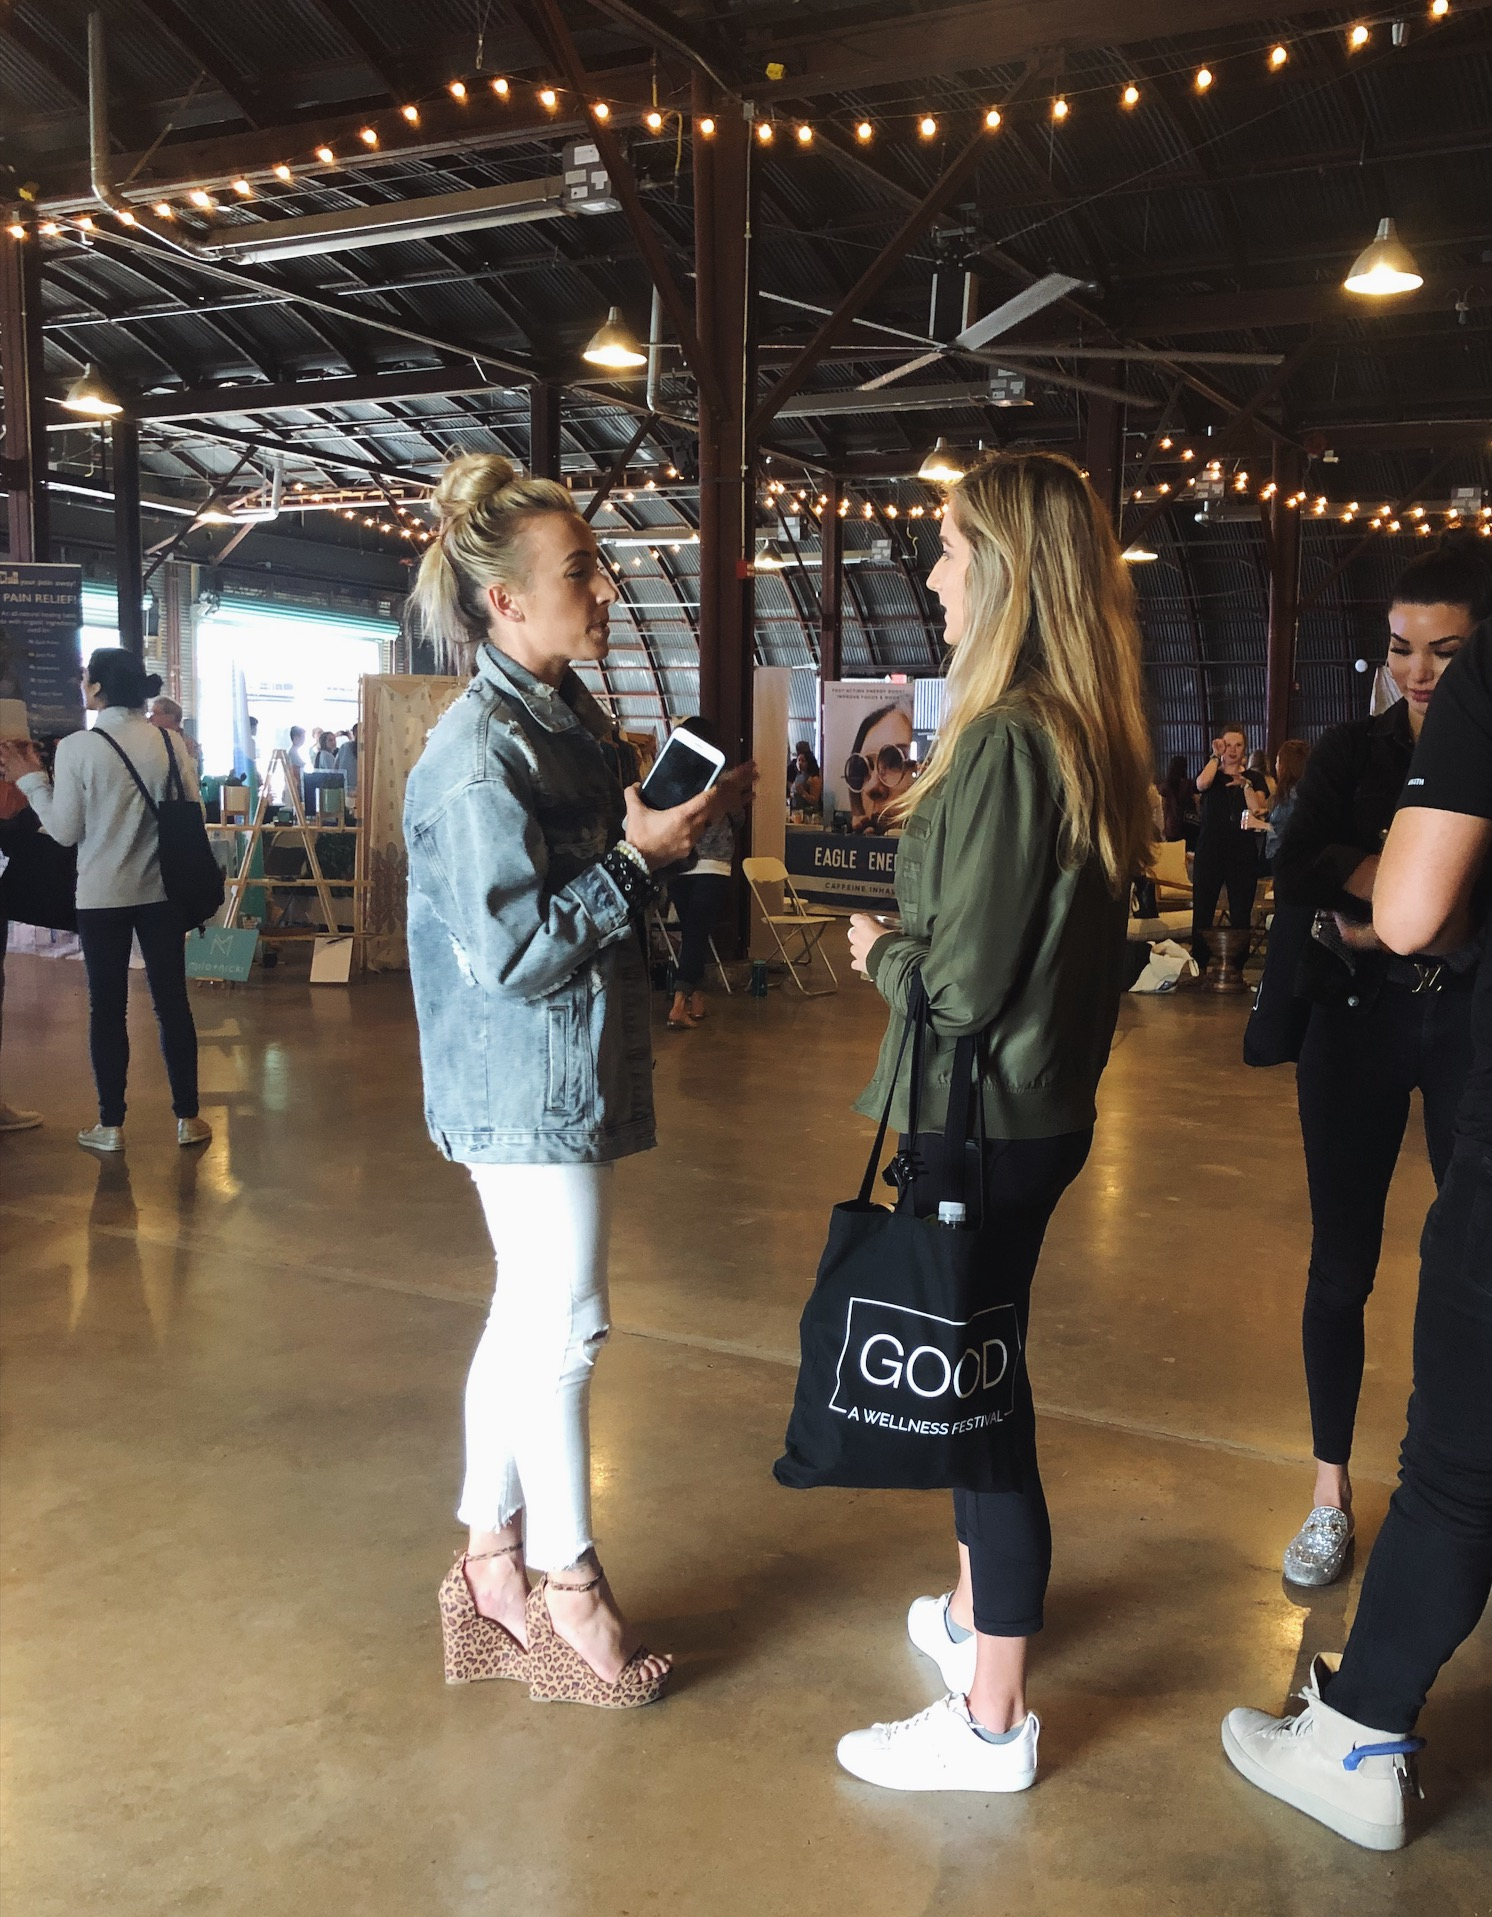 Chatting up Bizzie gold, the queen of personal development and entrepreneurship - she's started five brands/businesses, including buti yoga.